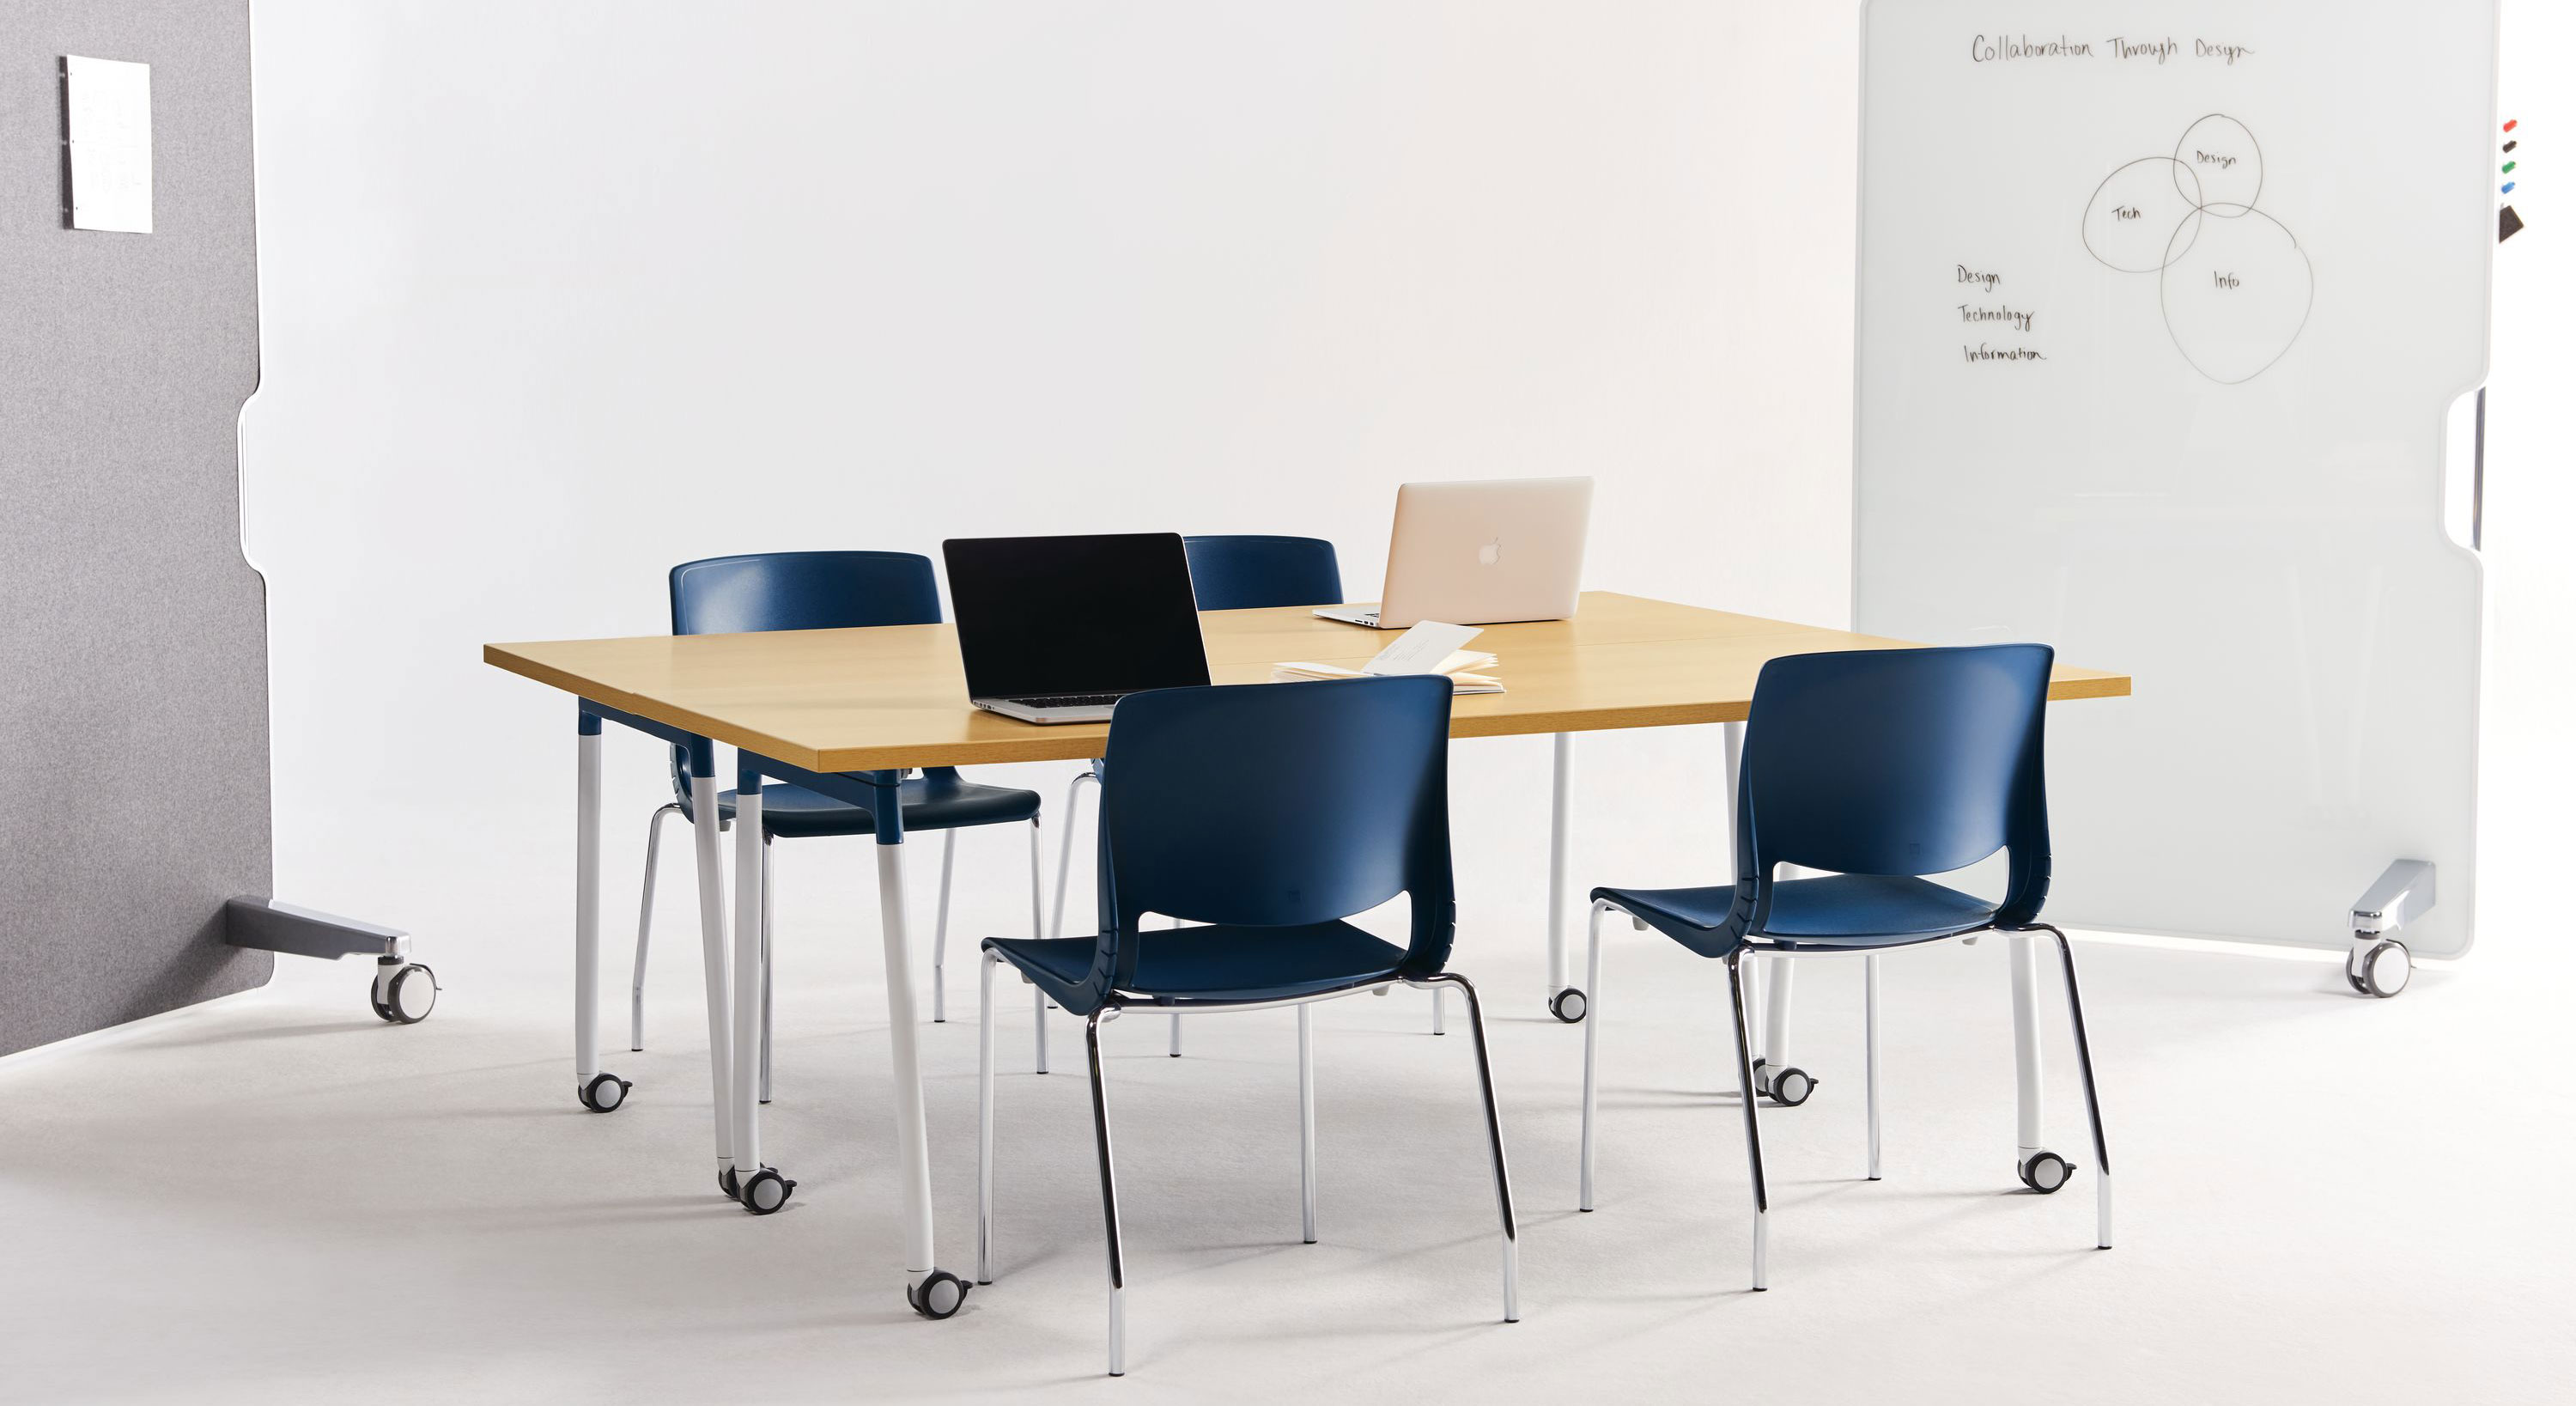 classroom doting of furniture desk school the chairs rcm collection schoolsu design table tables modular student images groupe